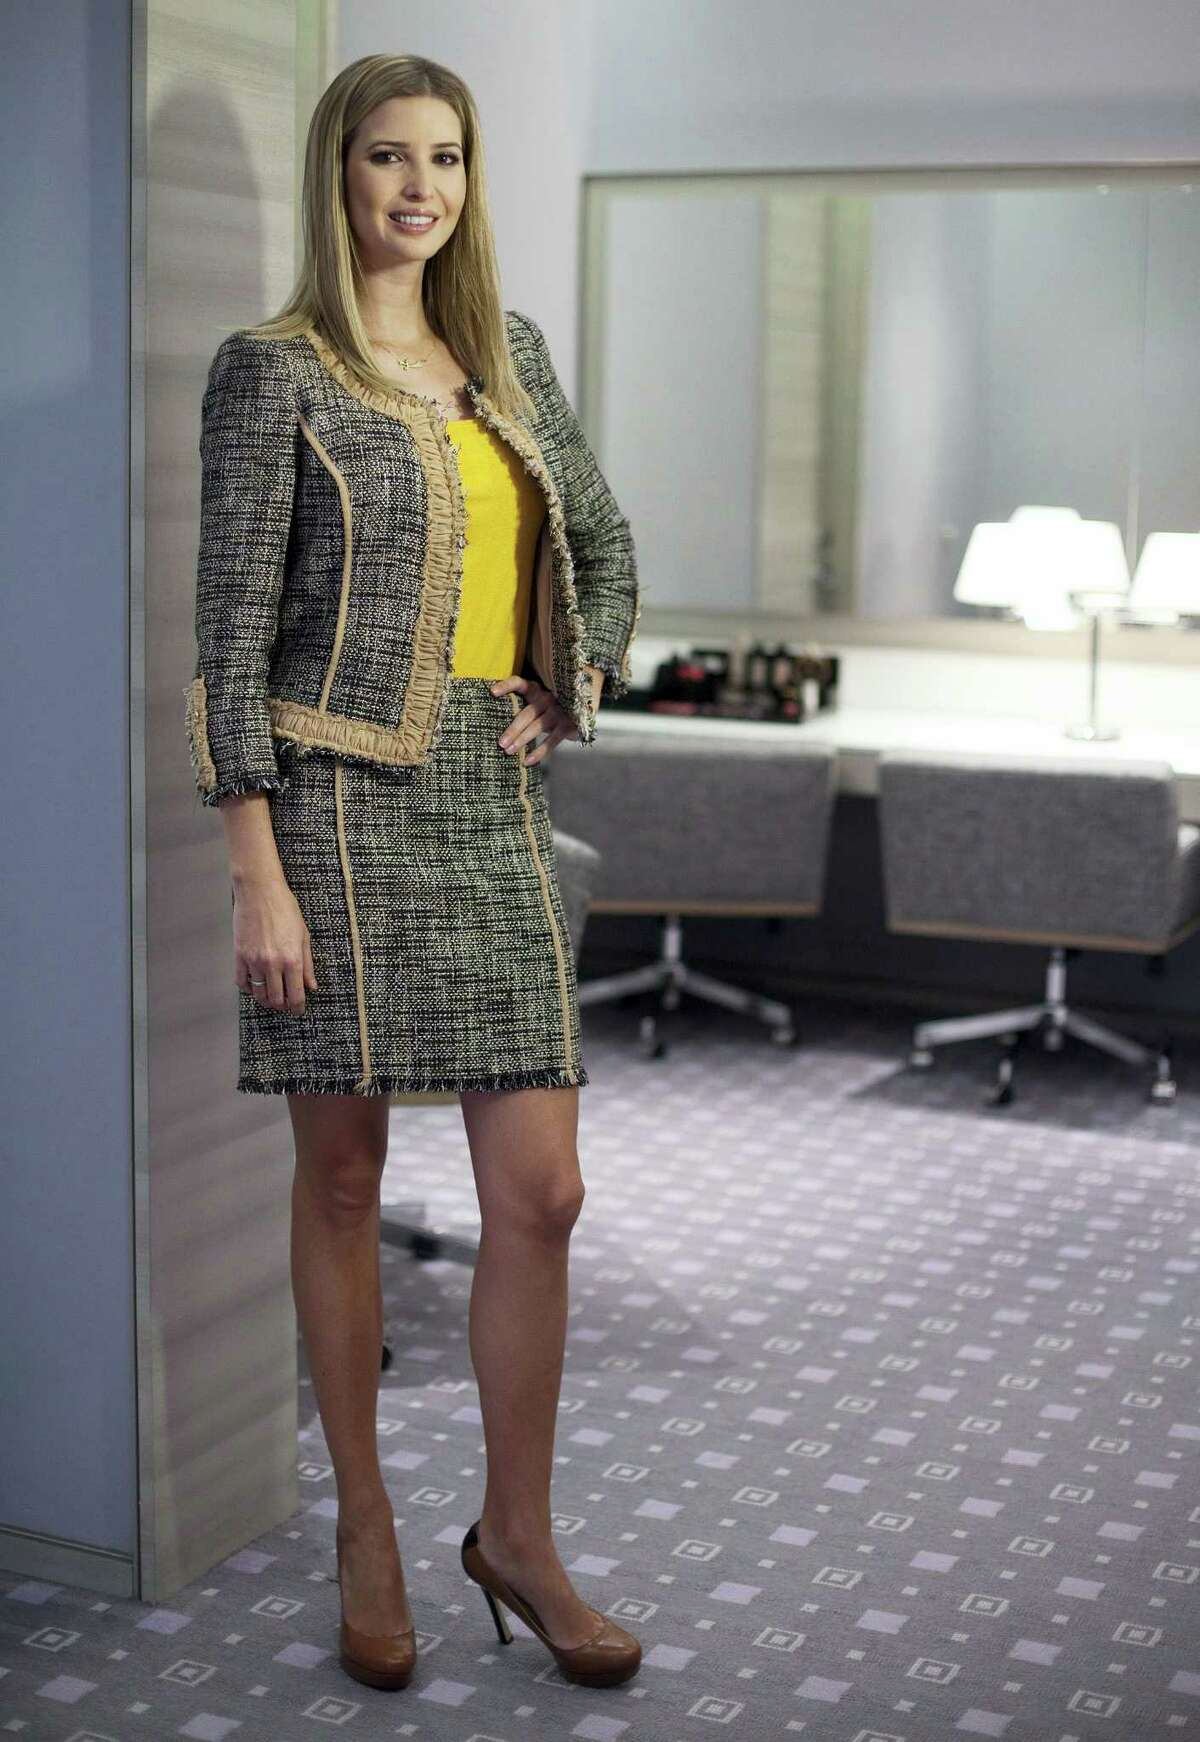 Ivanka Trump models an outfit following an interview to promote her clothing line in Toronto in 2015.